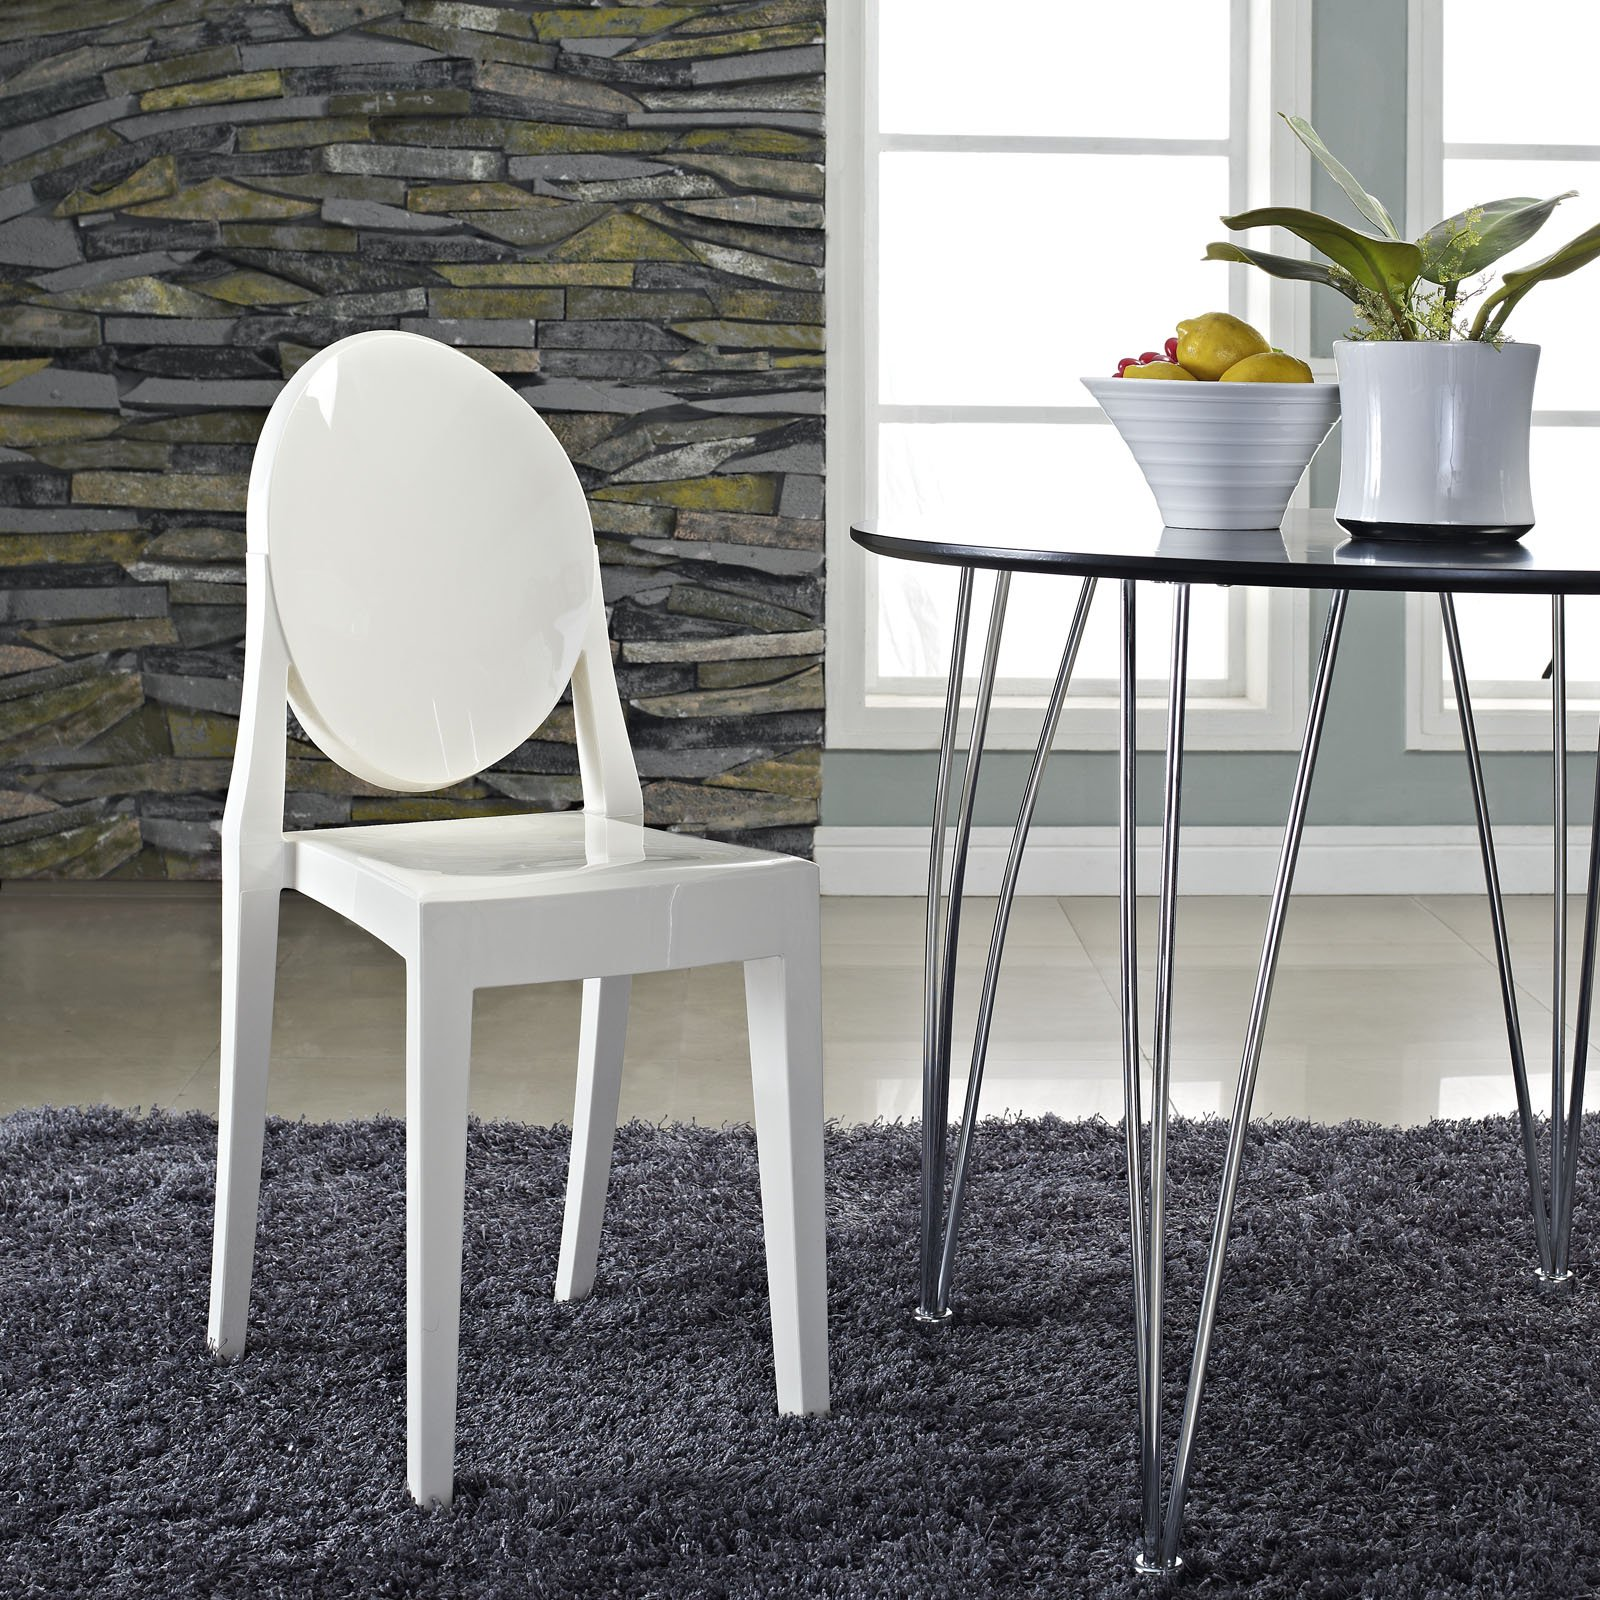 victoria ghost chair canopy lawn chairs walmart lexmod philippe starck style in white